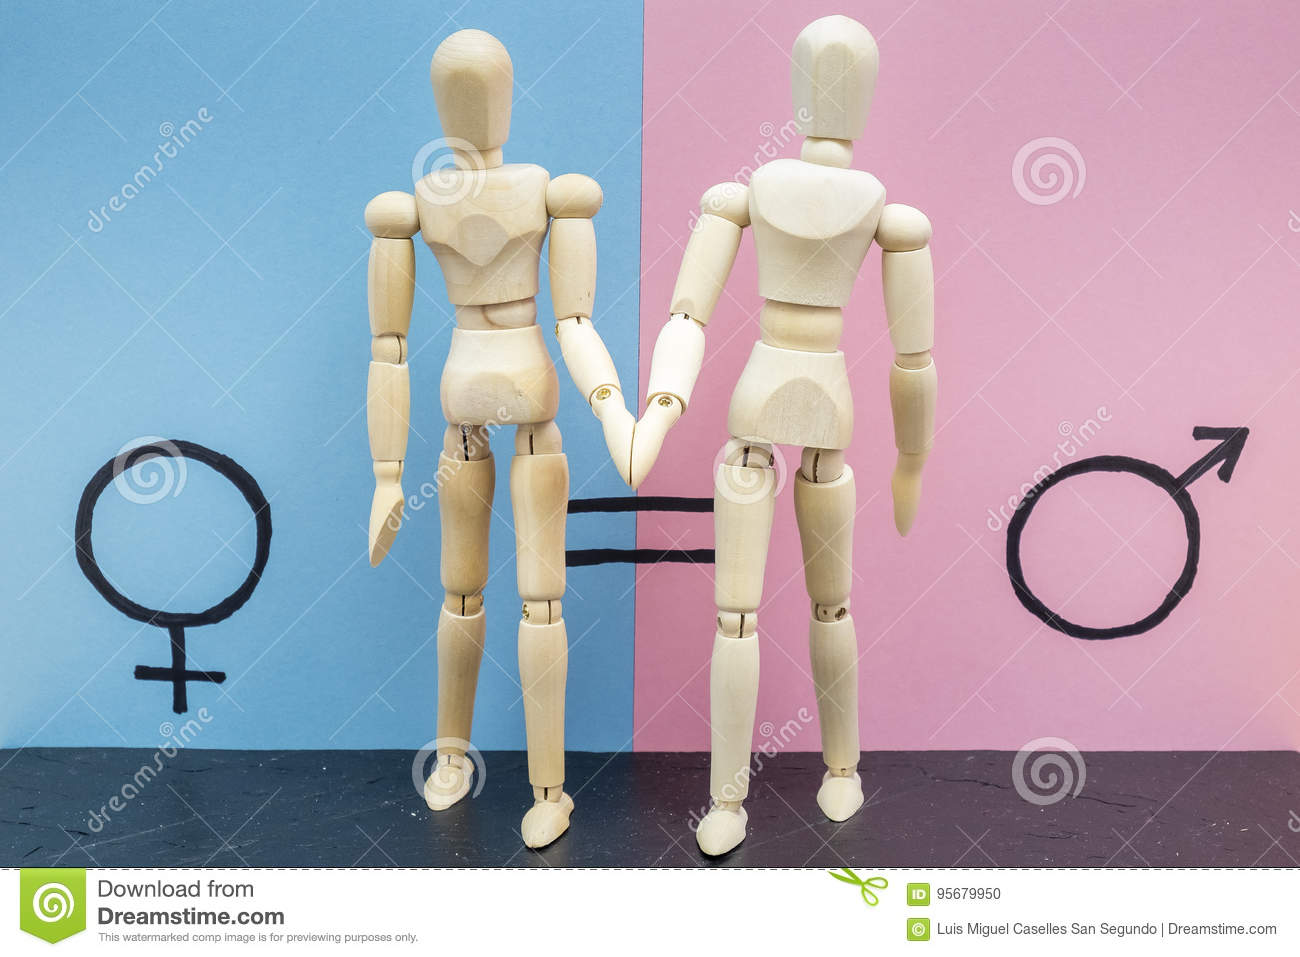 Symbol of gender equality